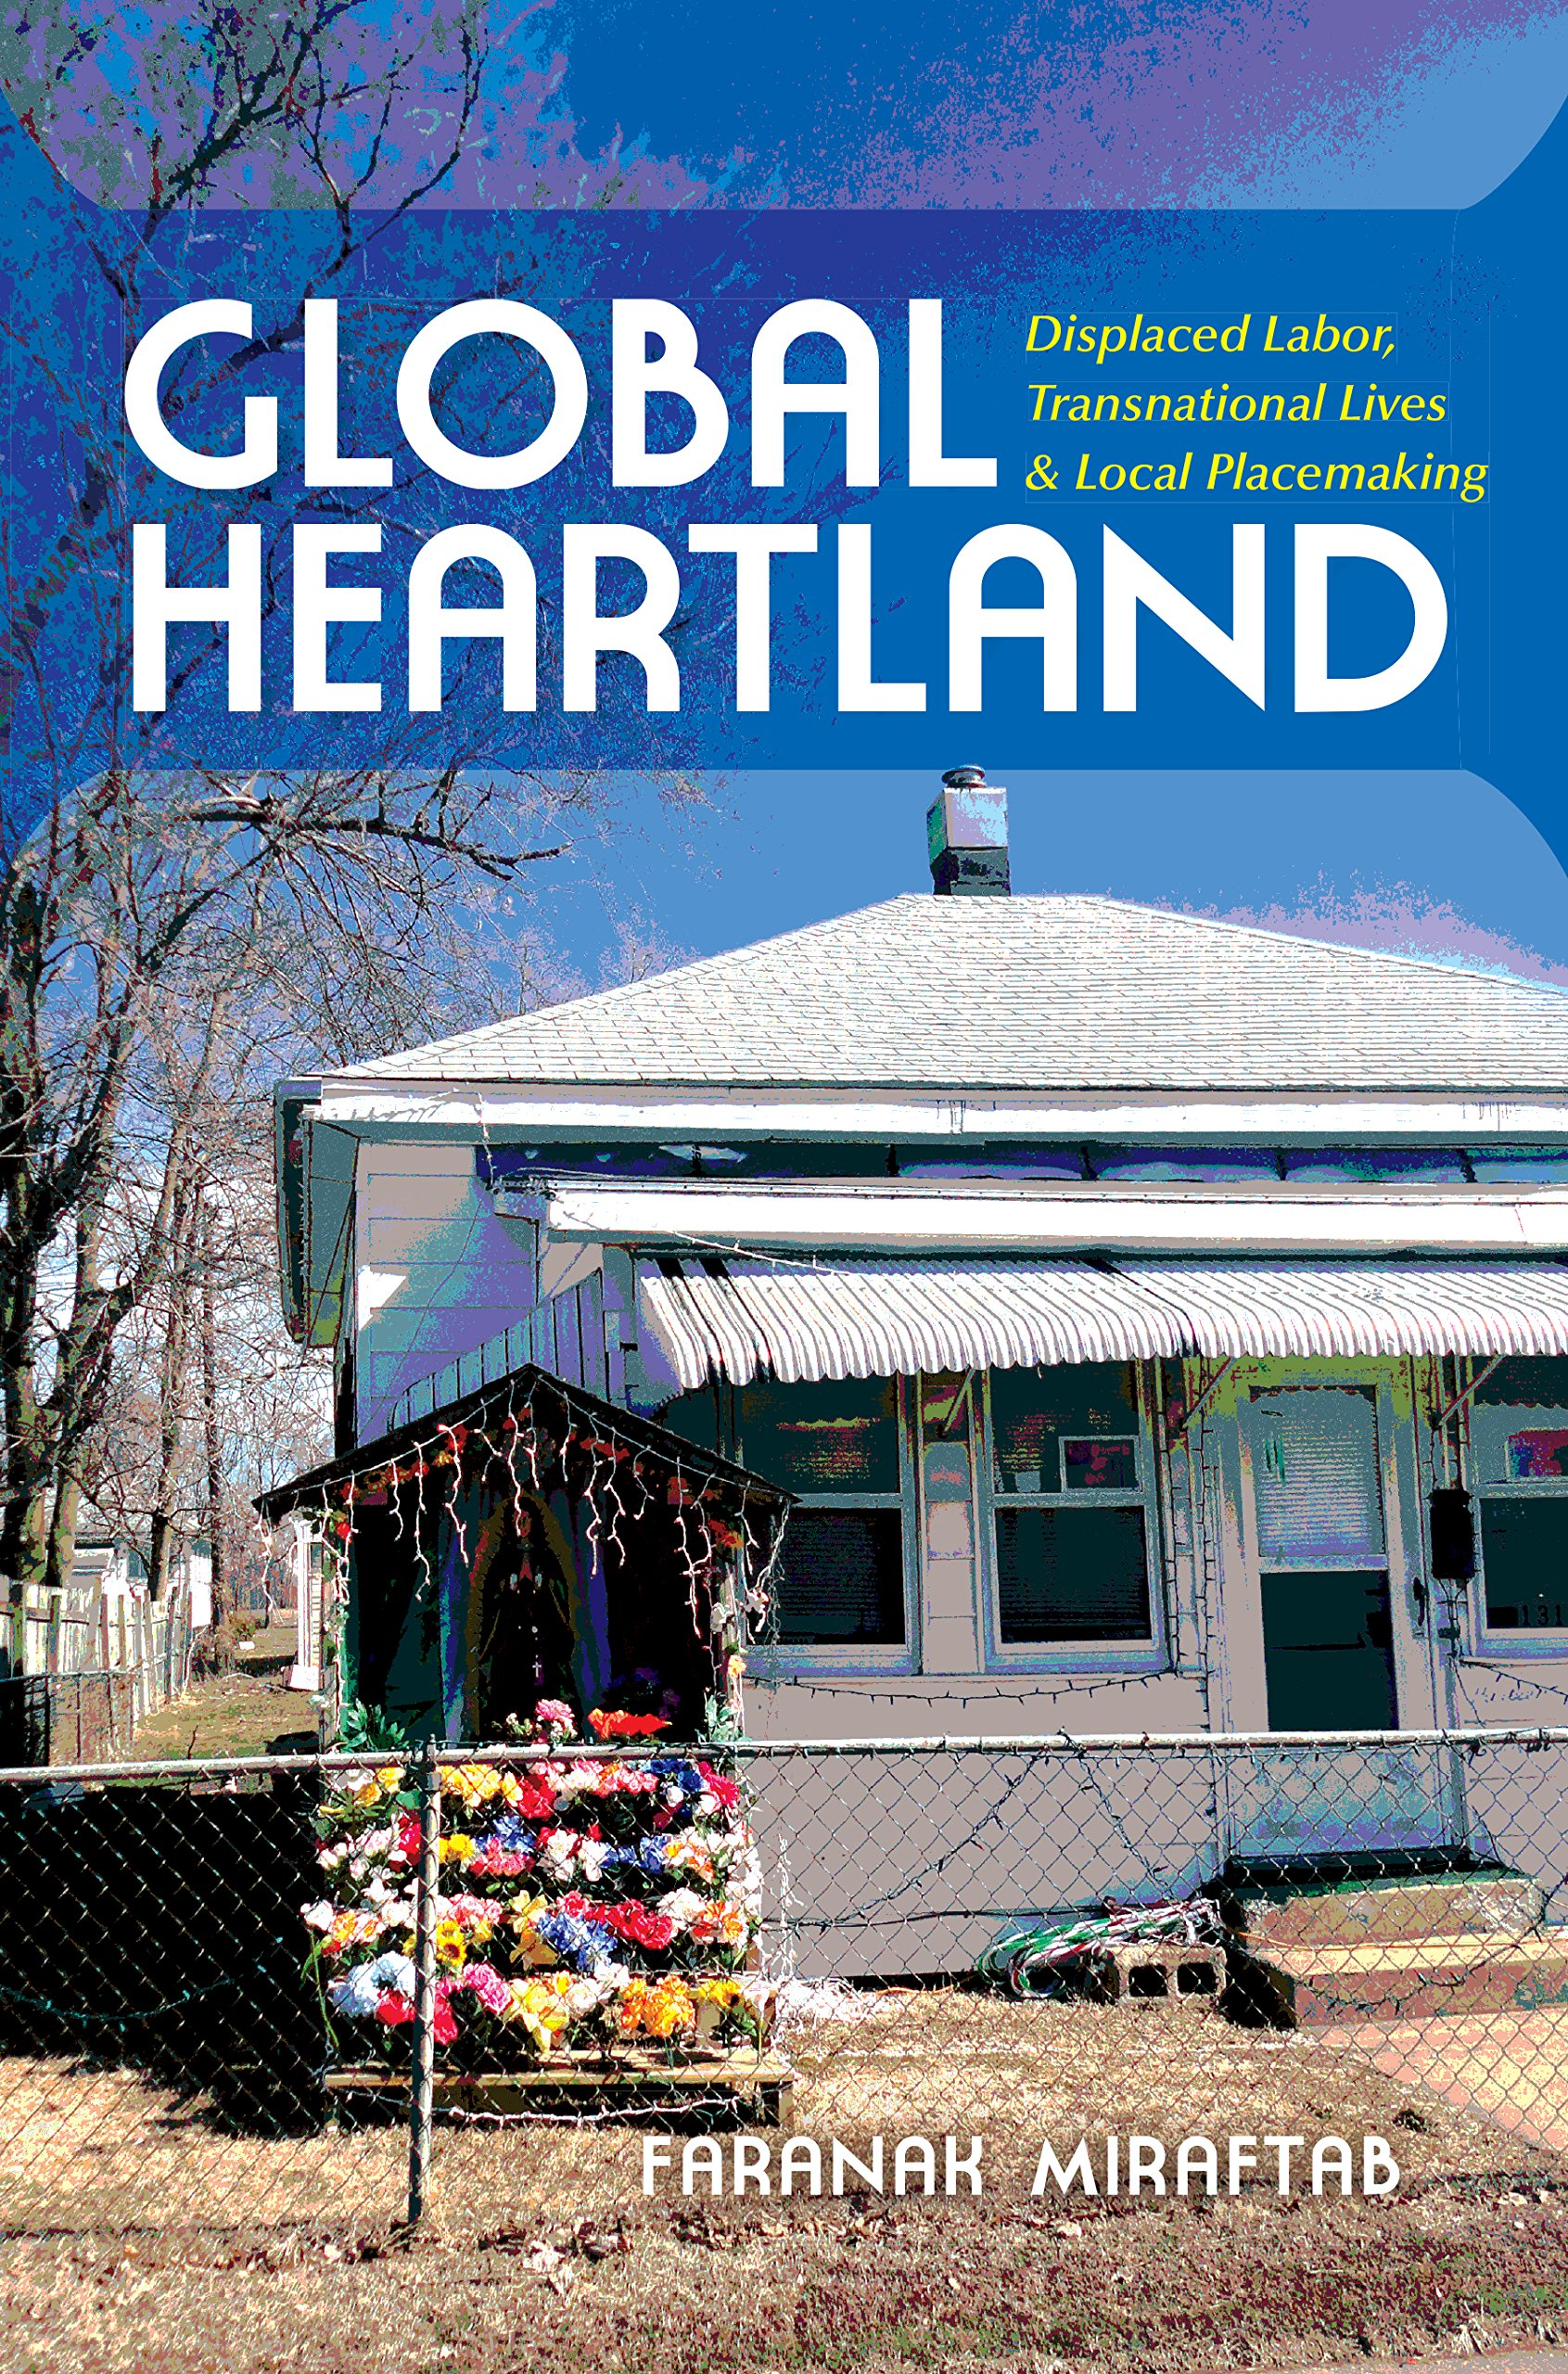 Global Heartland: Displaced Labor, Transnational Lives, and Local Placemaking (Framing the Global) ebook